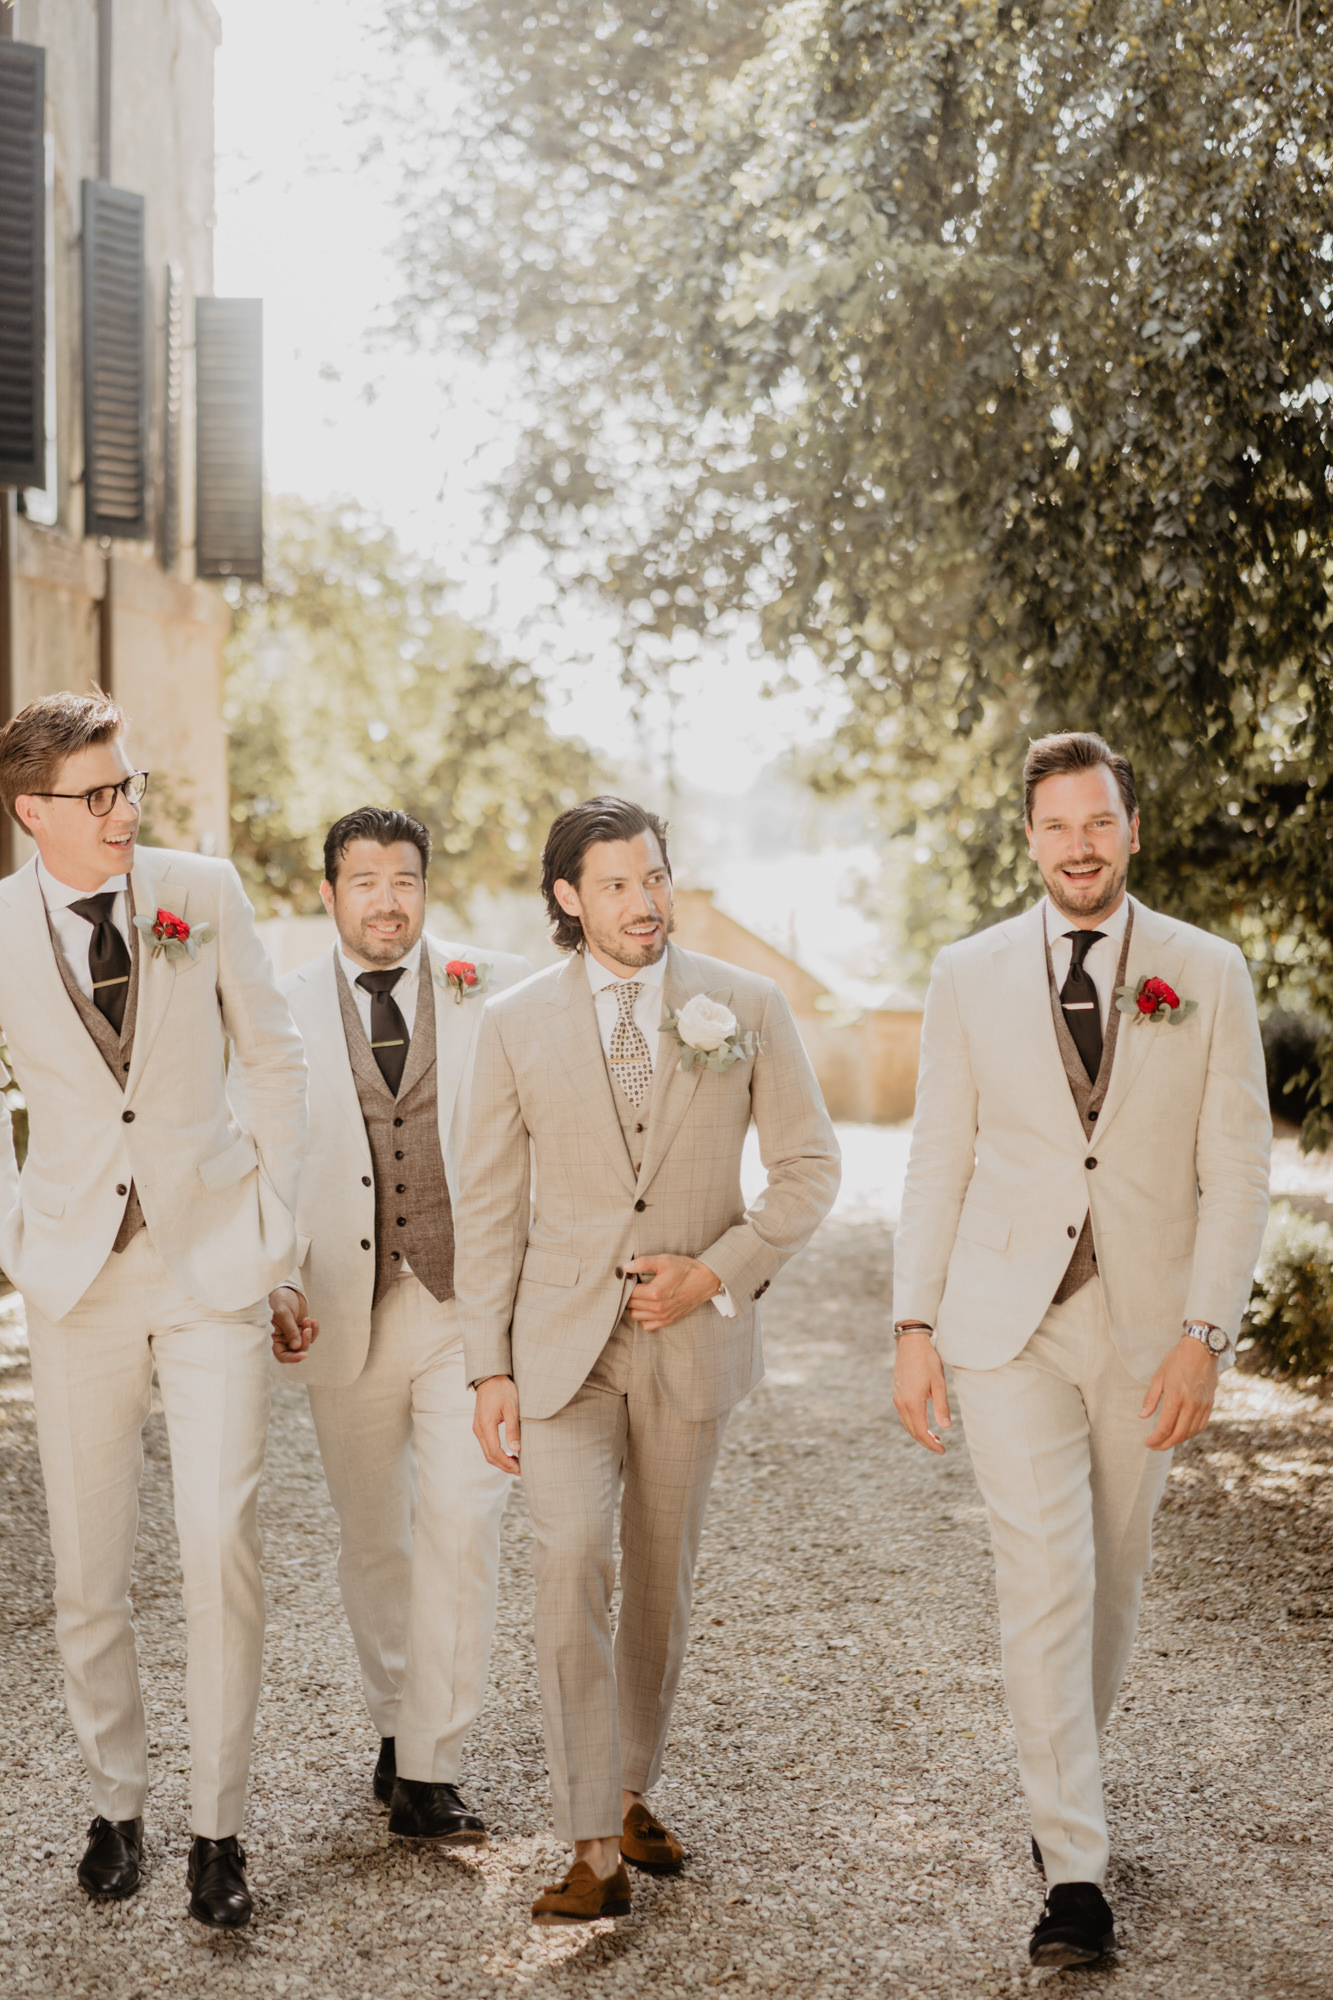 mens-fashion-groom-party-taupe-suits-brown-ties-worlds-best-wedding-photos-david-bastianoni-italy-wedding-photographers